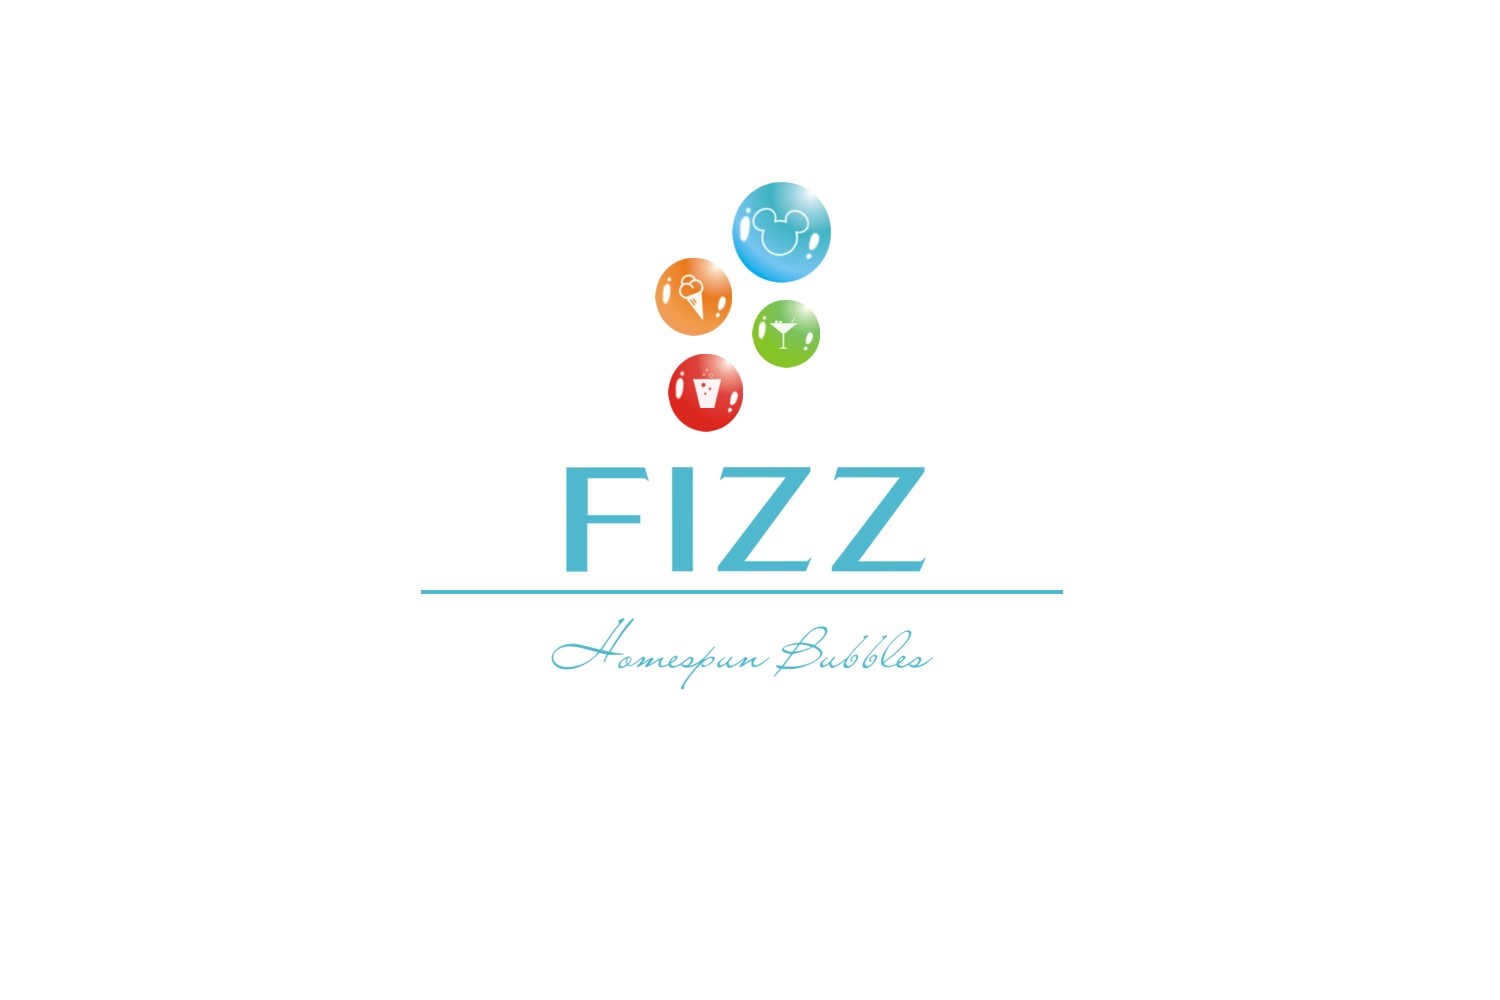 Logo Design by Q_Division_Designs - Entry No. 76 in the Logo Design Contest Unique Logo Design Wanted for Fizz.